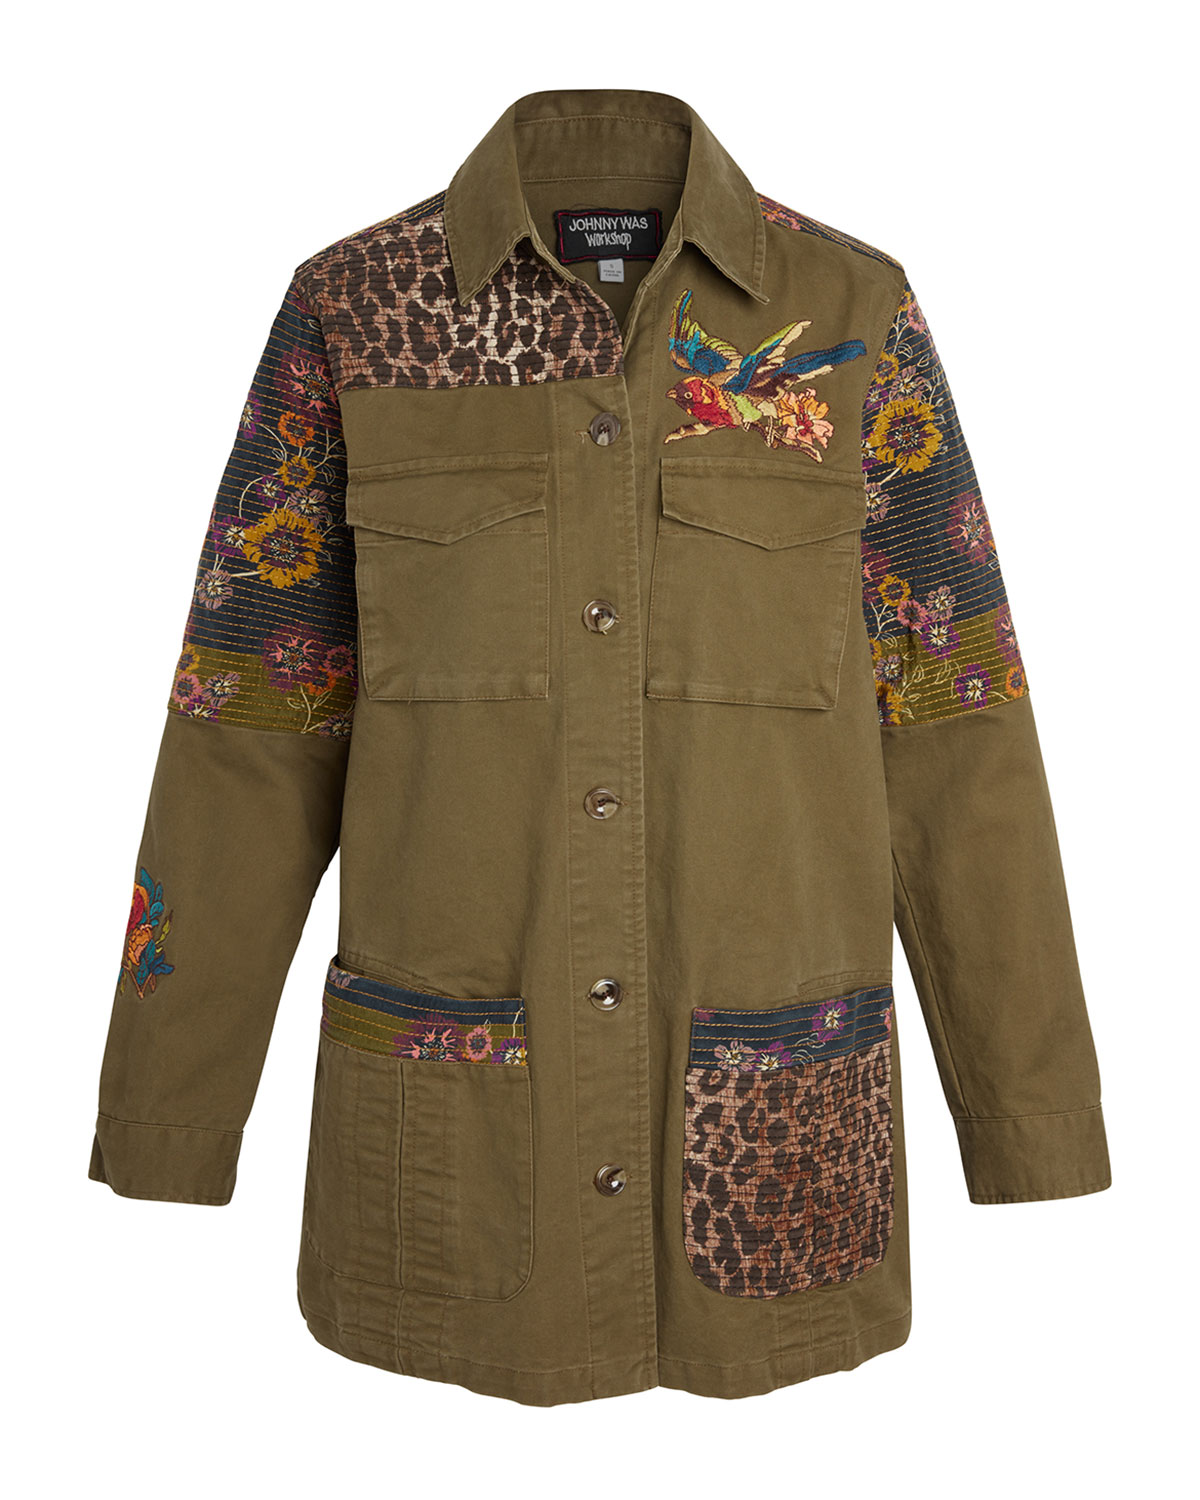 Johnny Was Patchwork Embroidered Military Jacket   Neiman ...